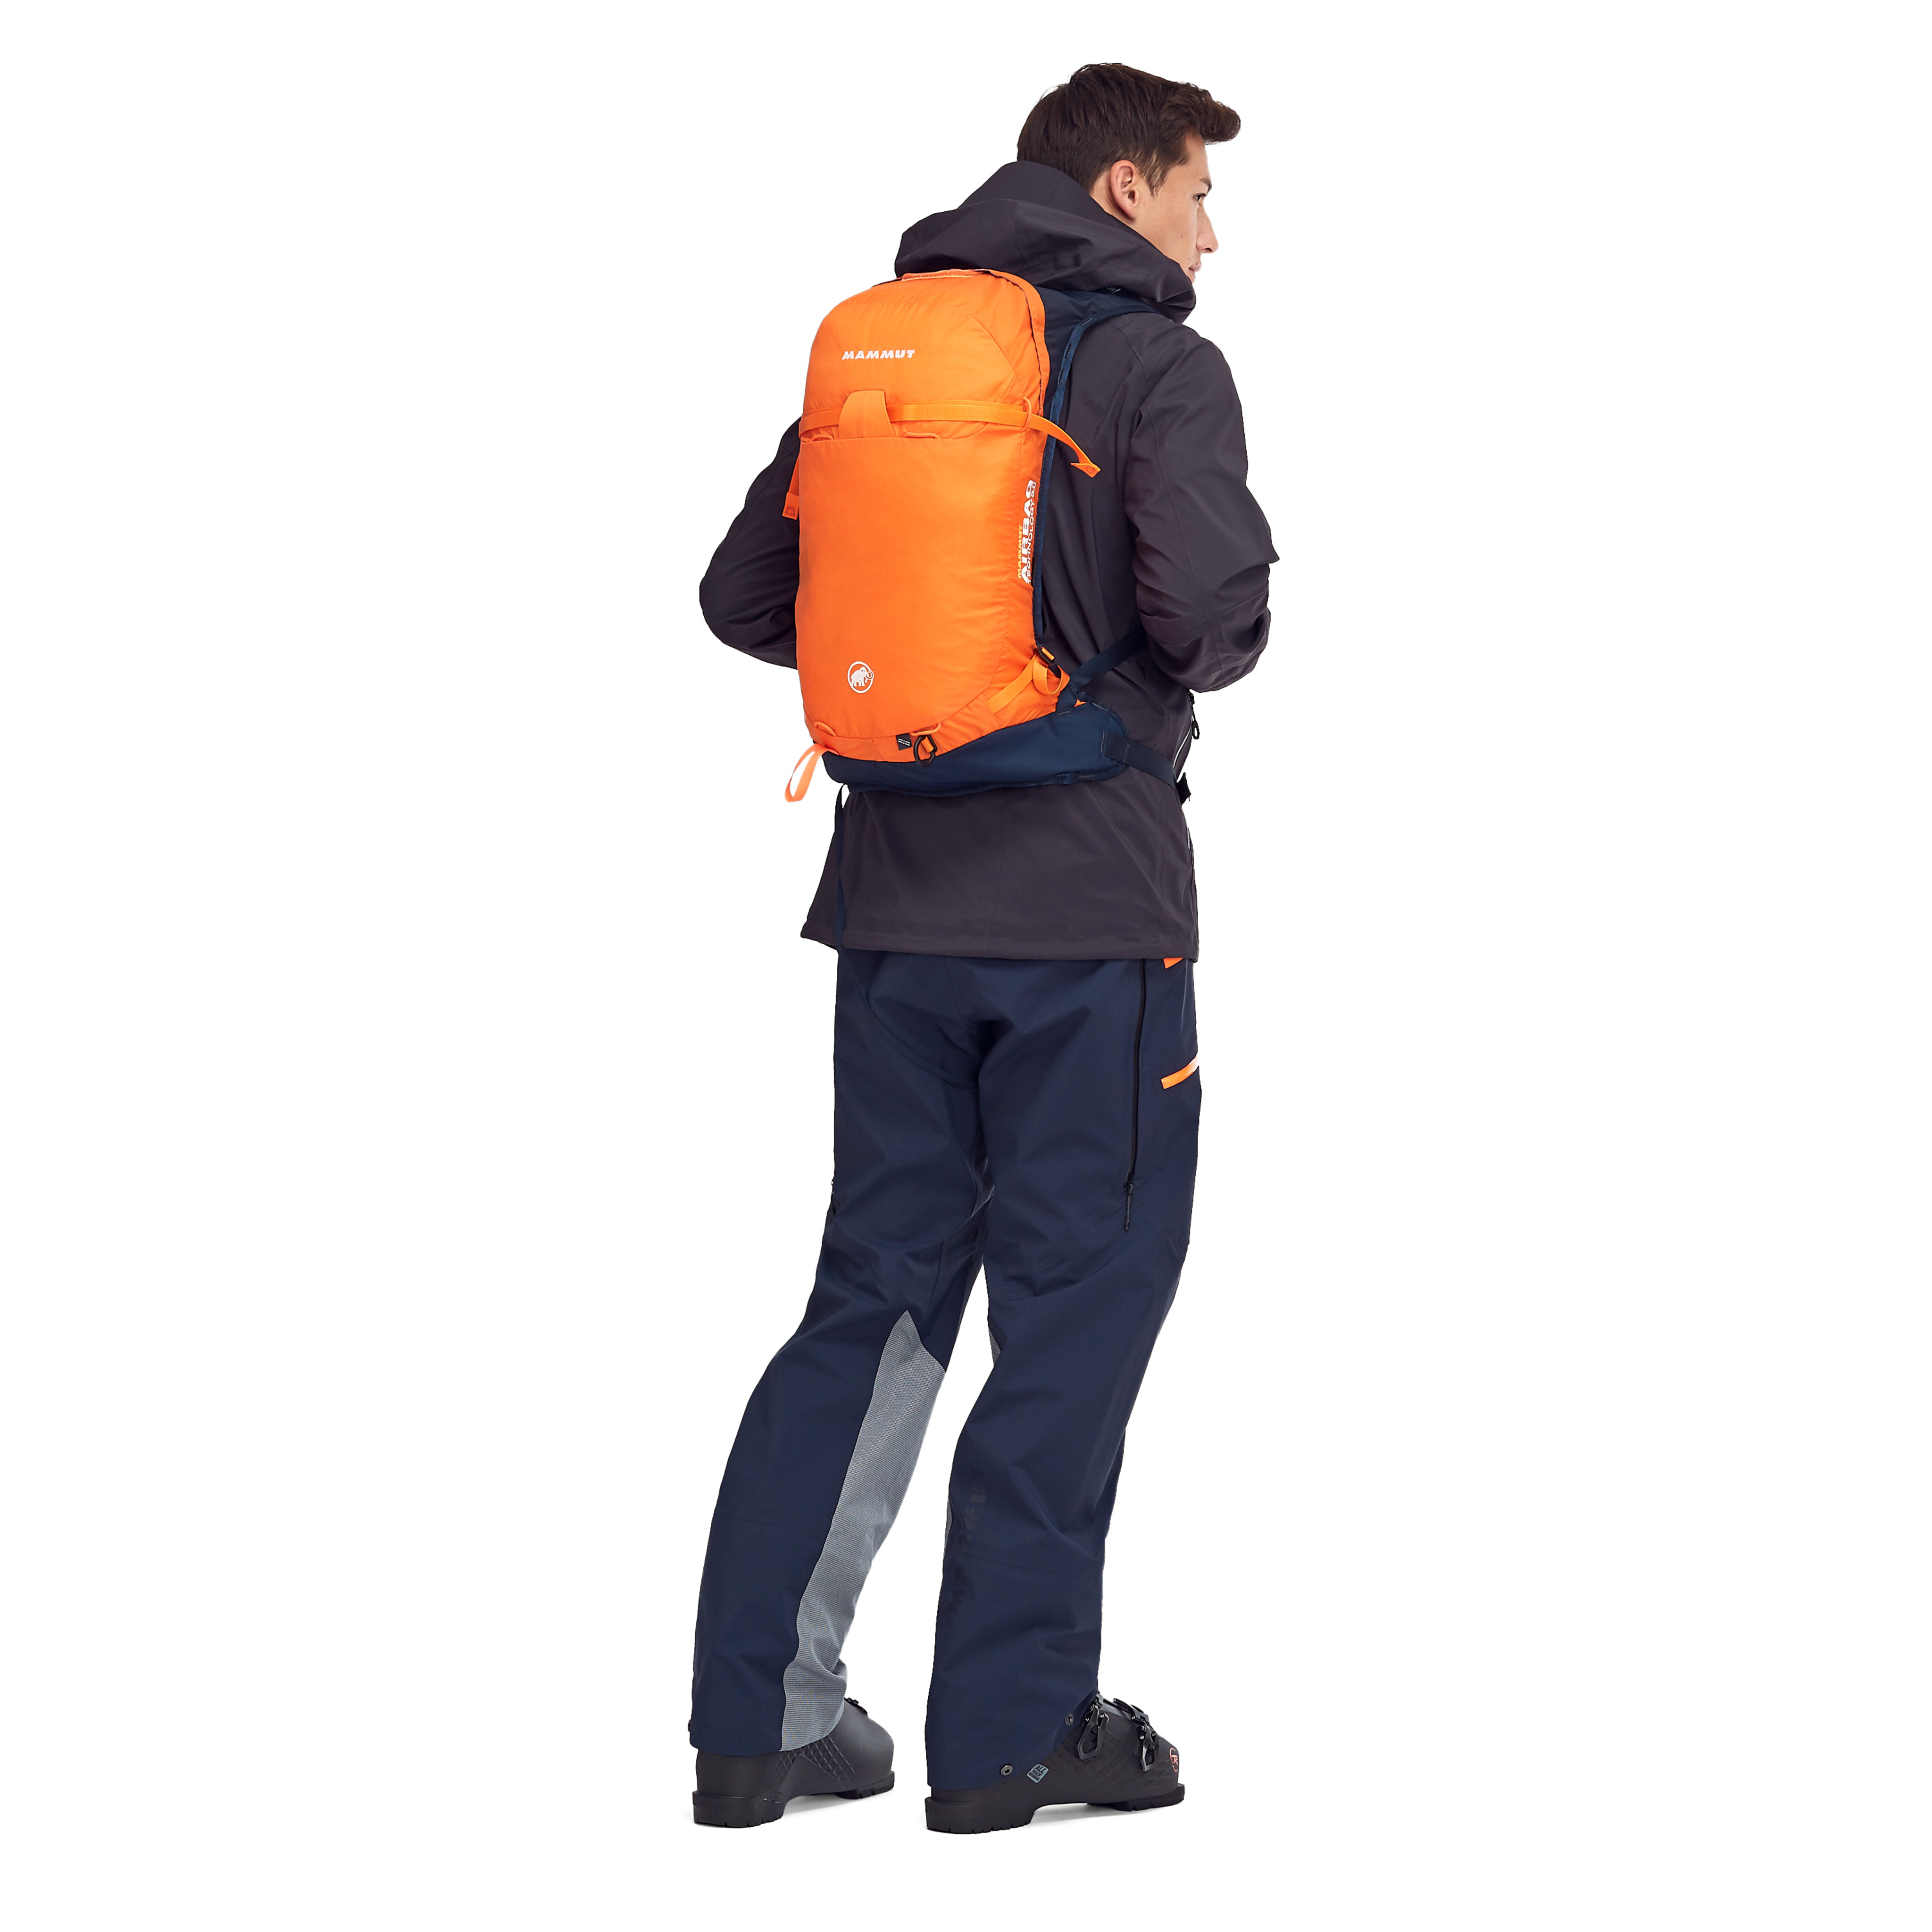 Ultralight Removable Airbag 3.0 product image